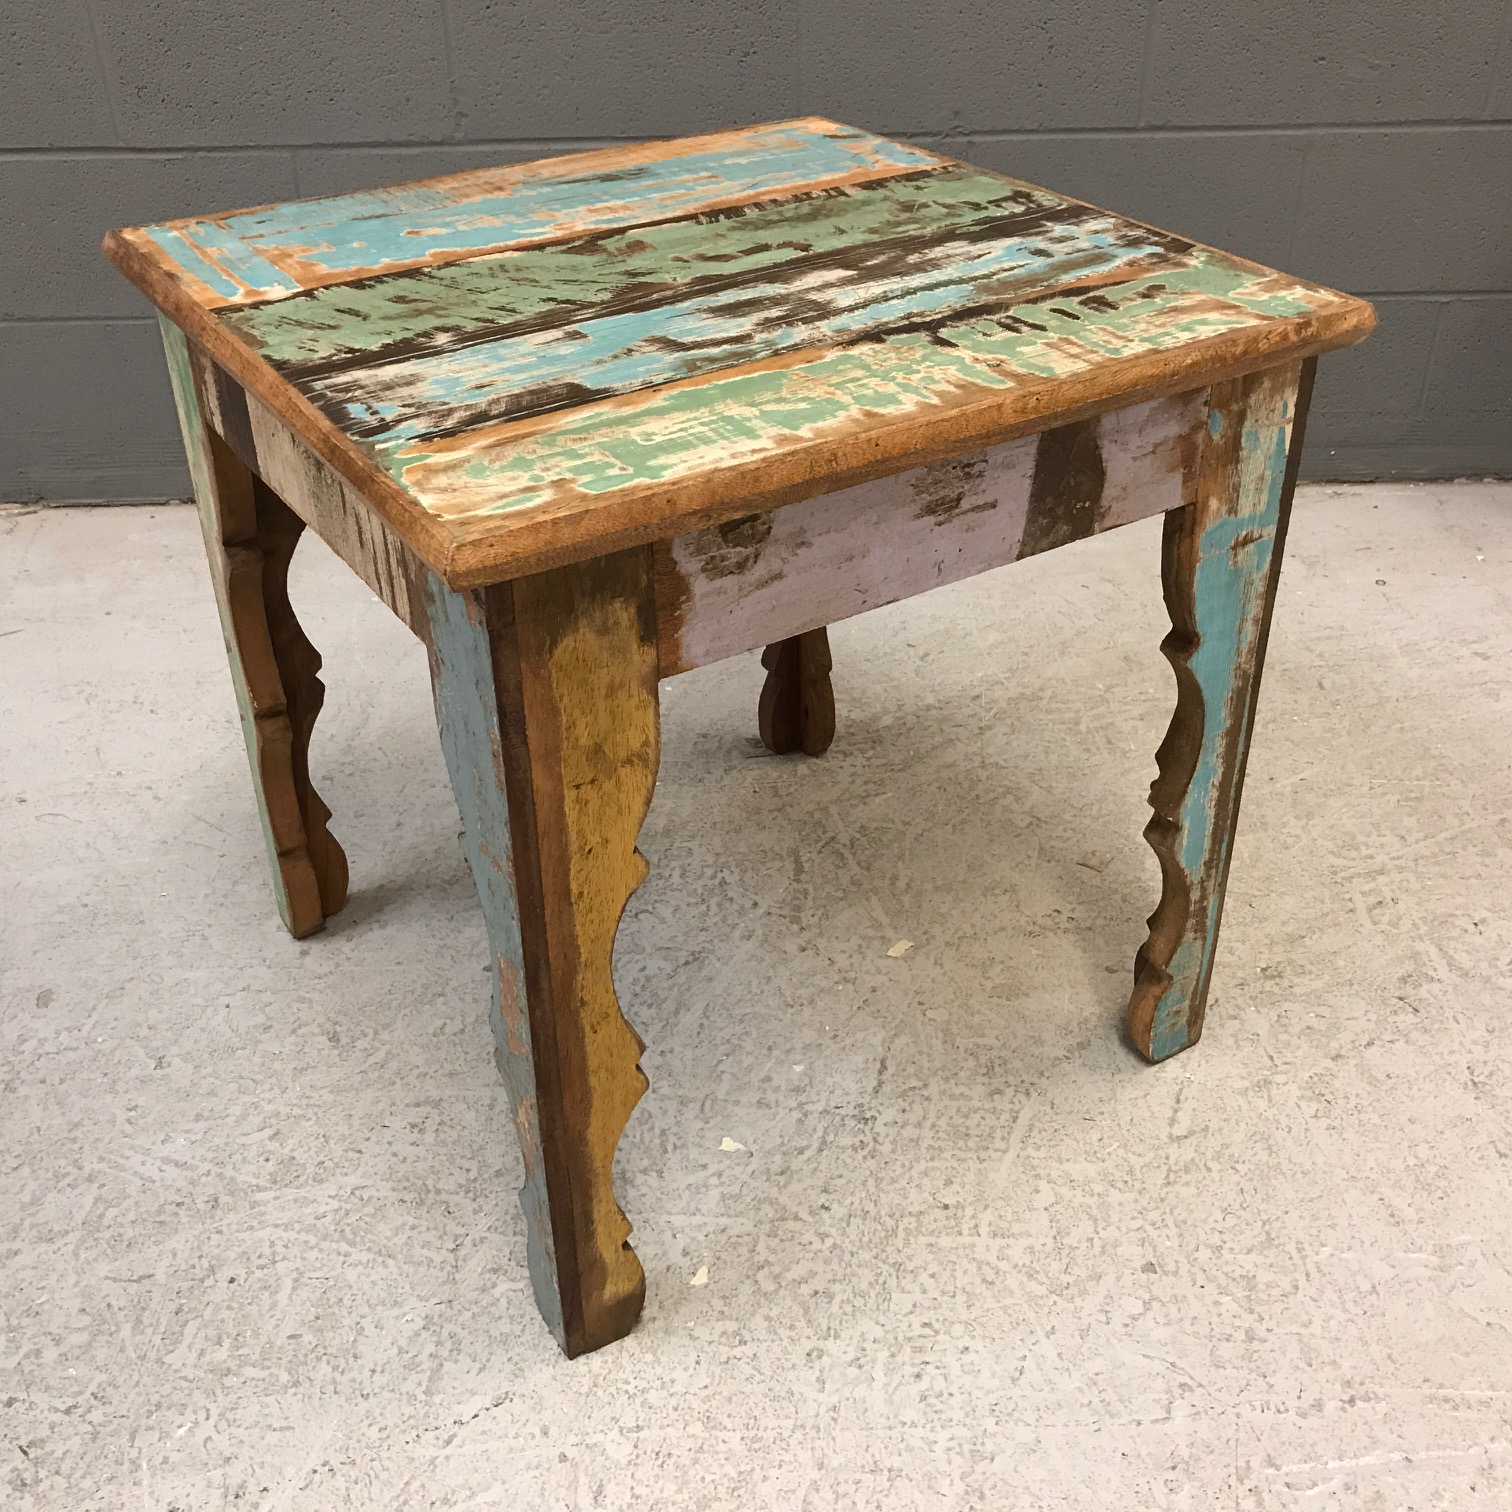 reclaimed wood side table. reclaimed wood side table  nadeau nashville